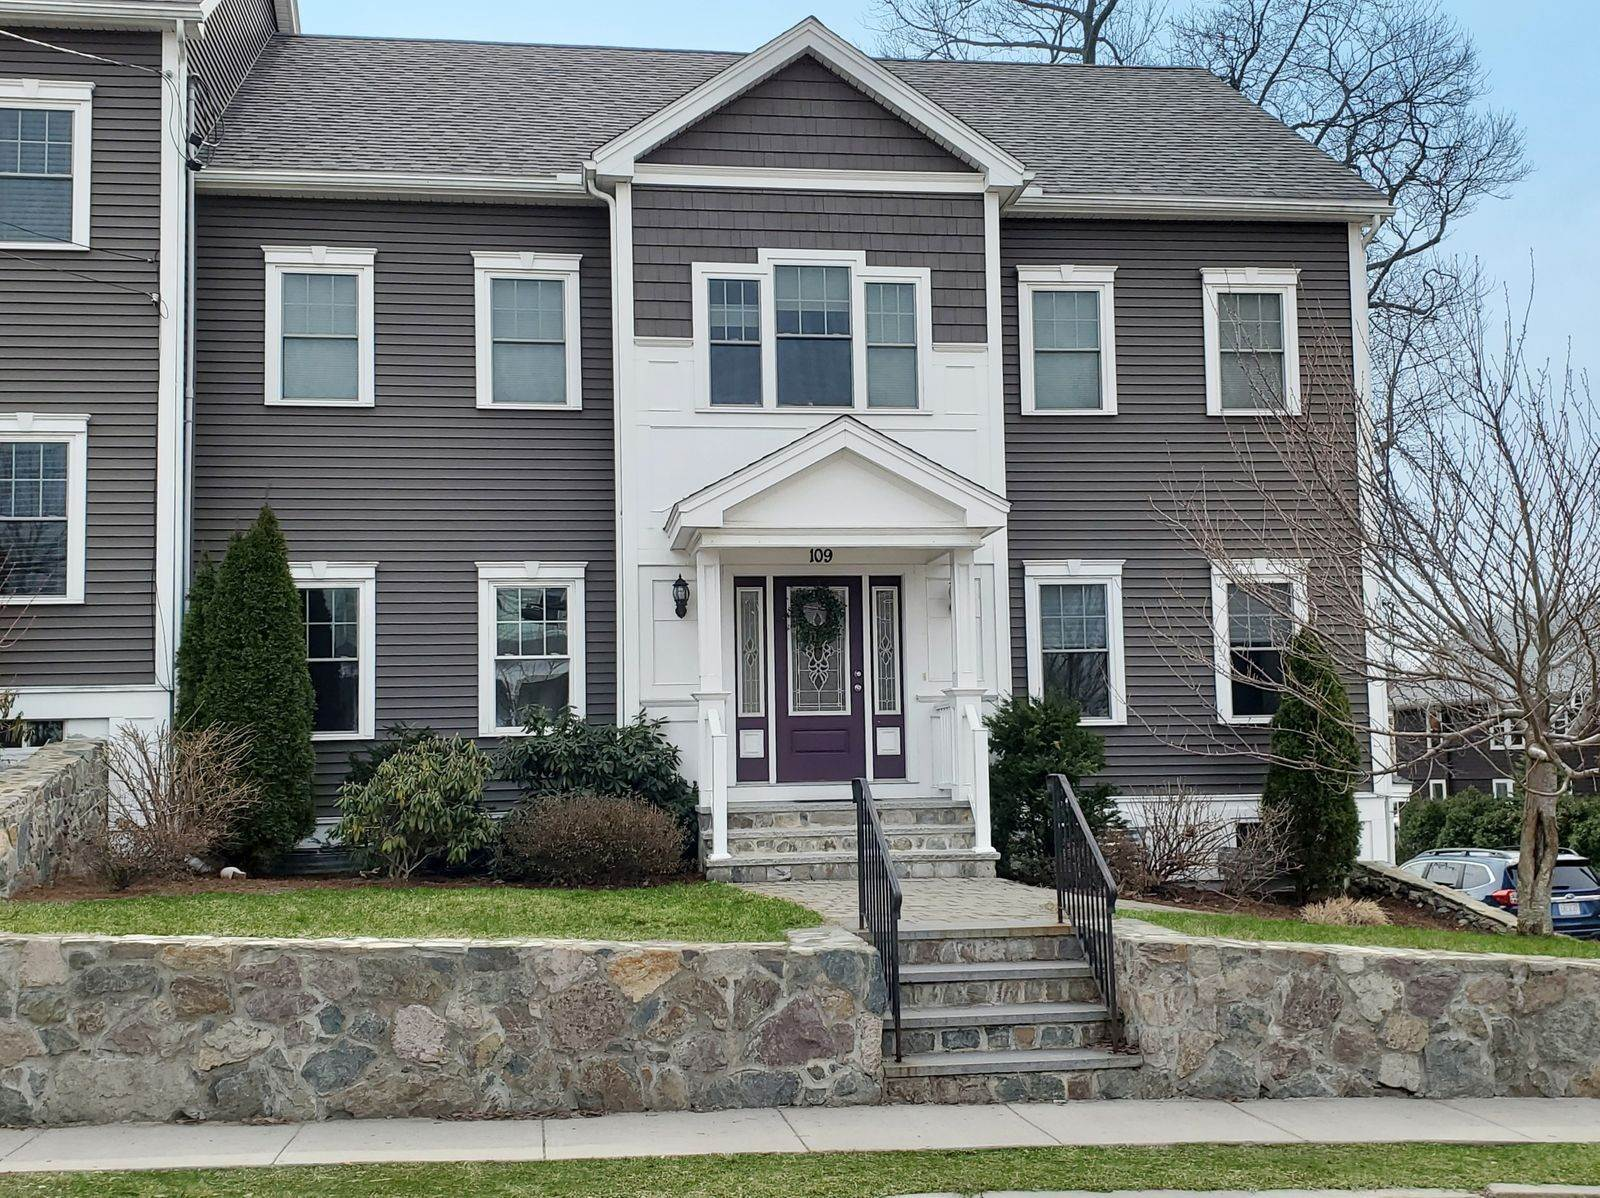 Single Family Home for Sale at 109 Waverley Street 109 Waverley St Belmont, Massachusetts,02478 United States